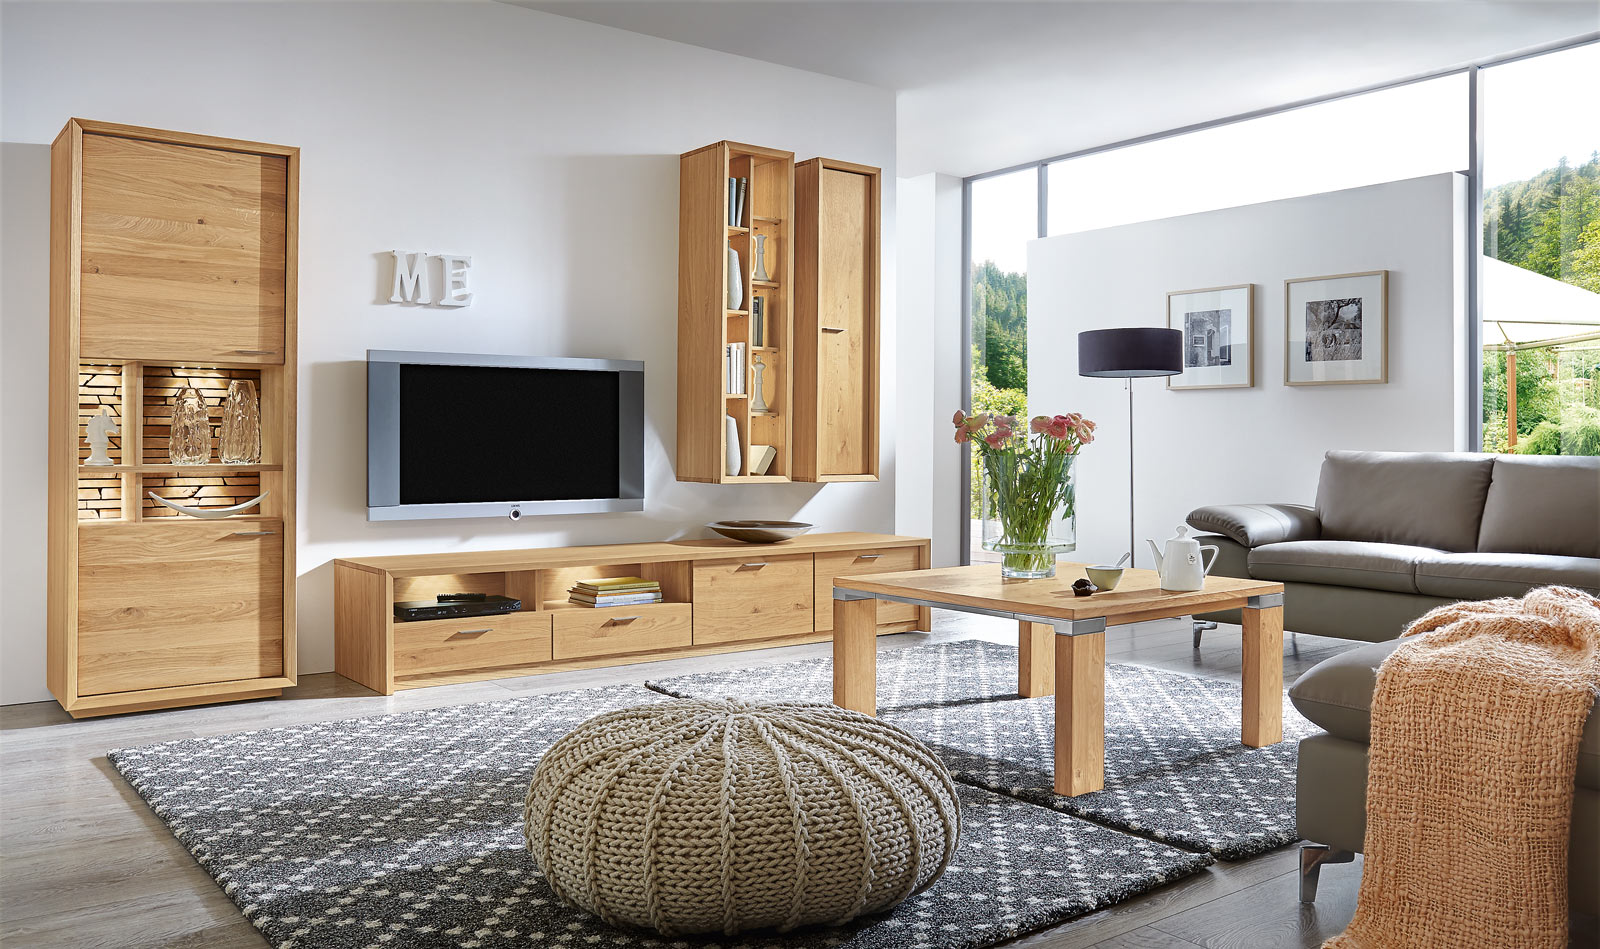 wohnzimmer programme fino venjakob m bel vorsprung durch design und qualit t. Black Bedroom Furniture Sets. Home Design Ideas